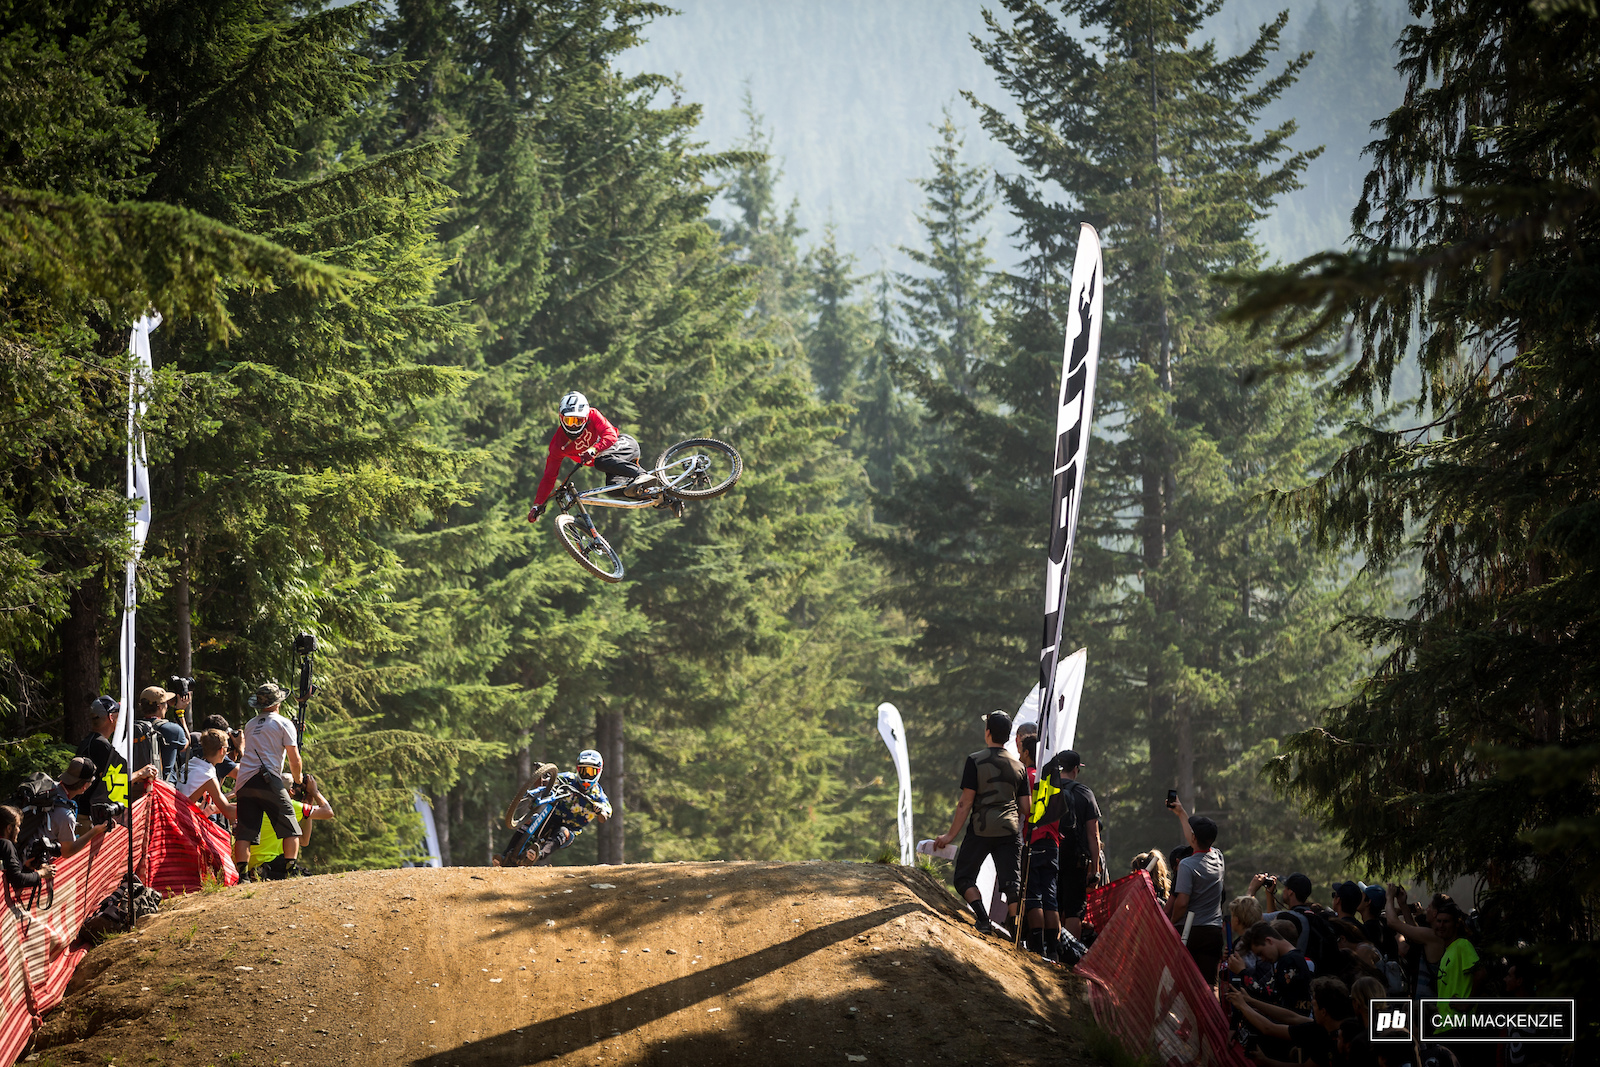 Bas was keeping things perfectly sideways while the other van Steenbergen bother was flipping his way down Crabapple